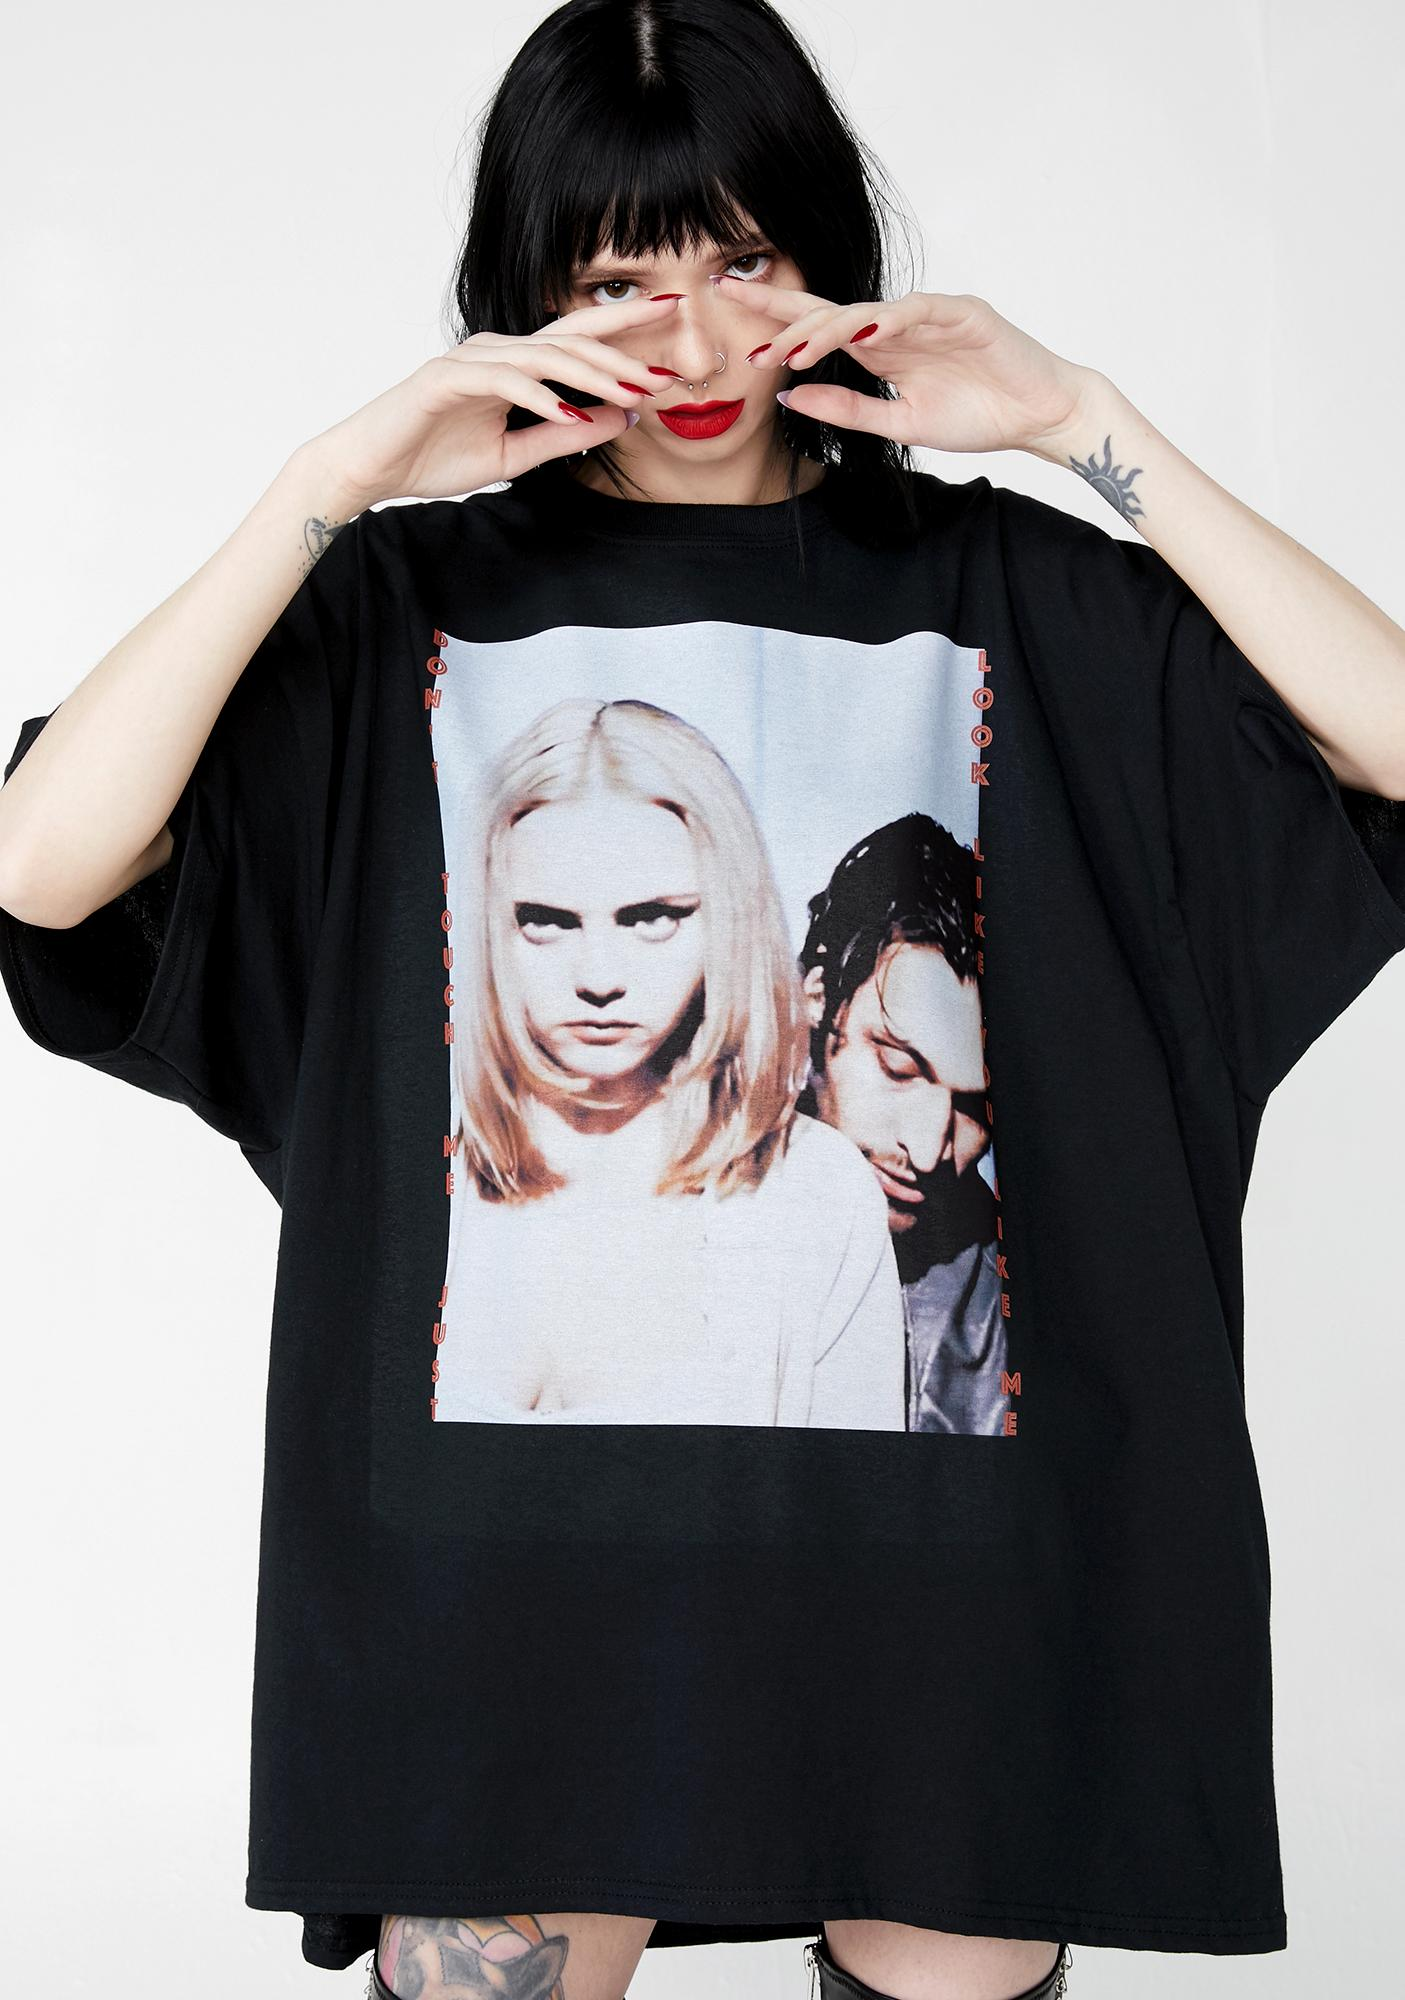 NYCXPARYS Don't Touch Me Tee